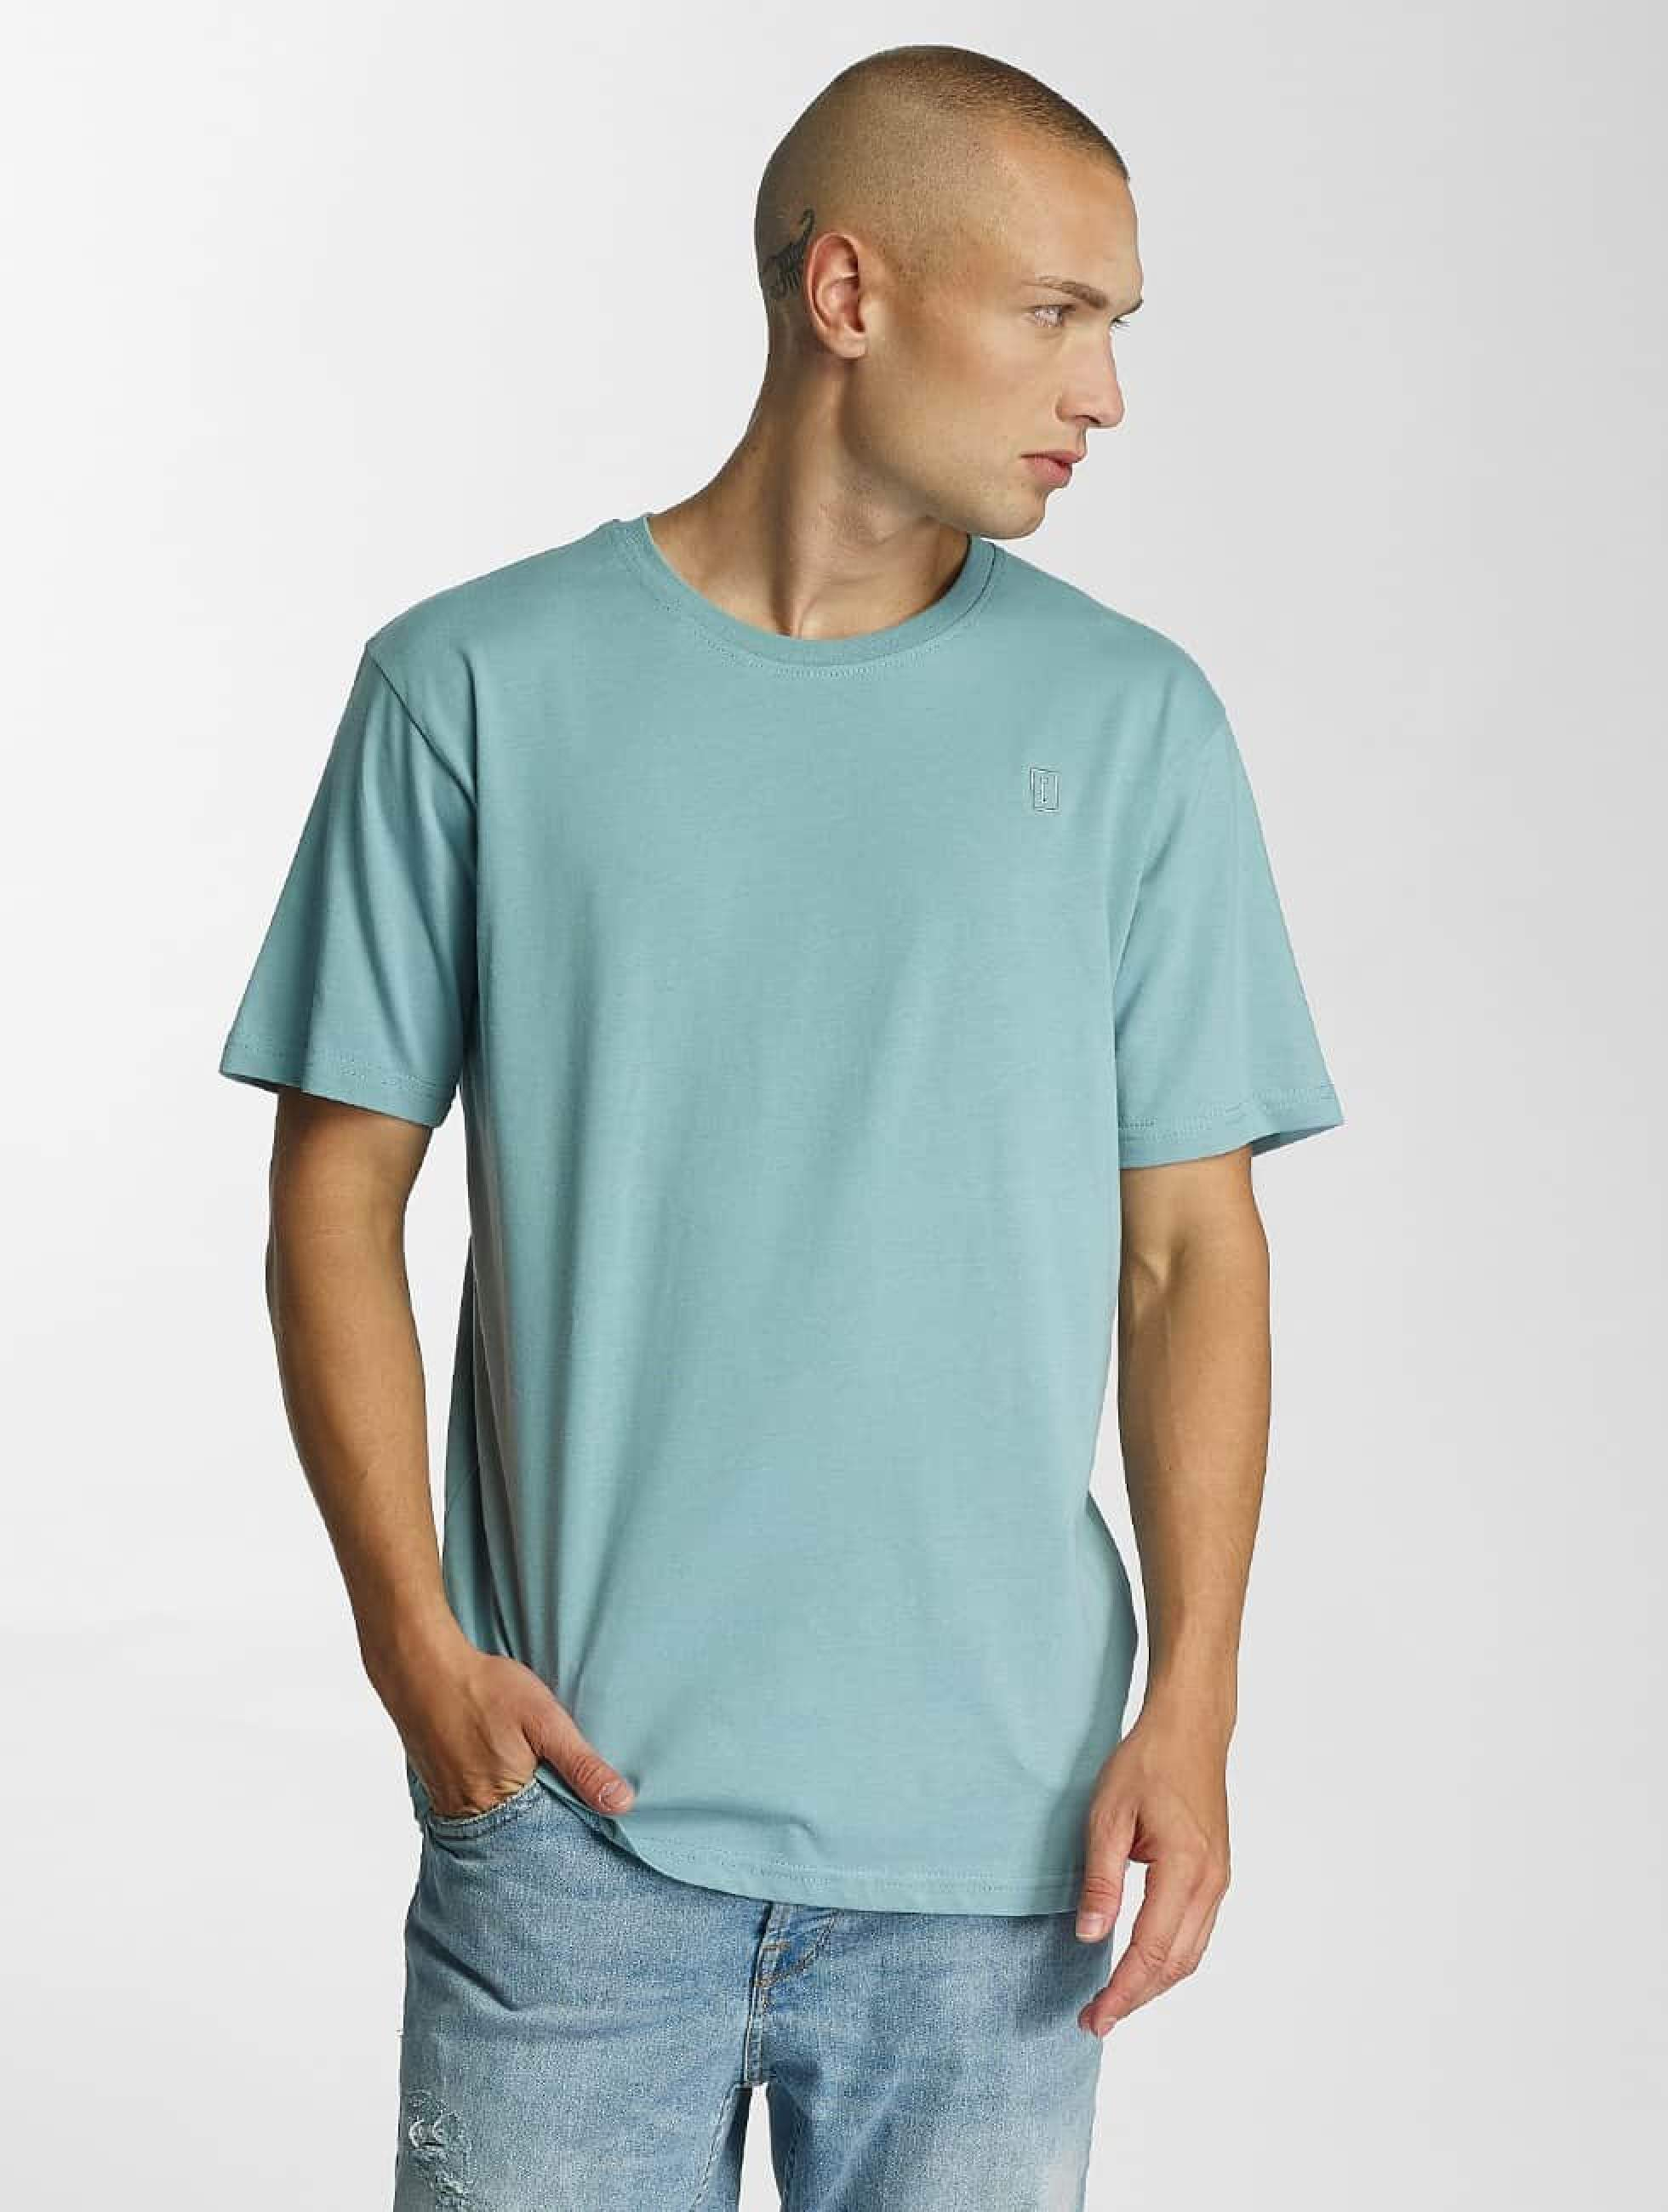 Cyprime / T-Shirt Platinum in blue S